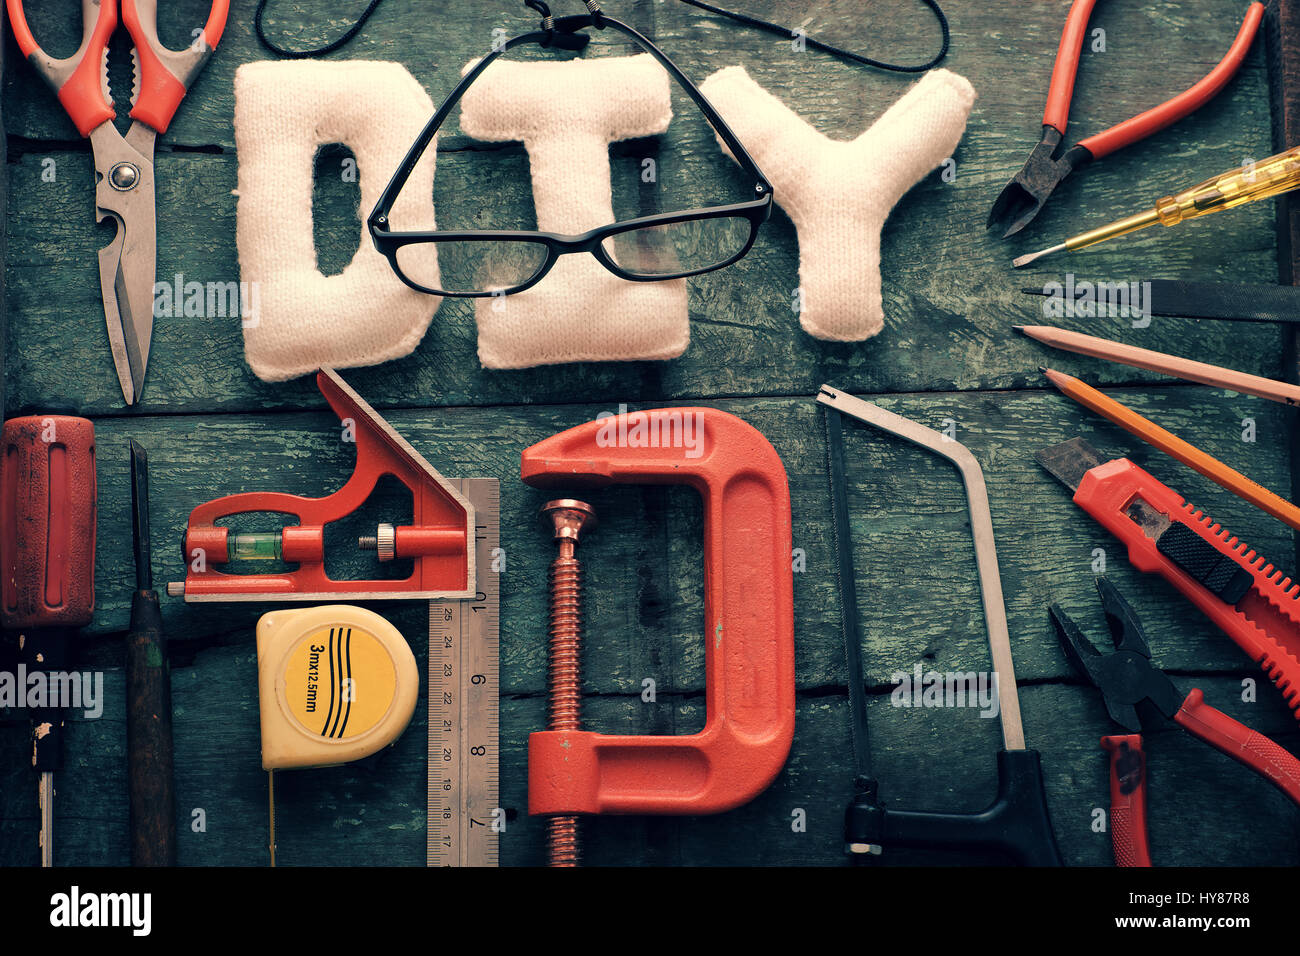 Diy tools background with group of crafting tools like scissors, hammer, knife, equipment for handmade product on Stock Photo